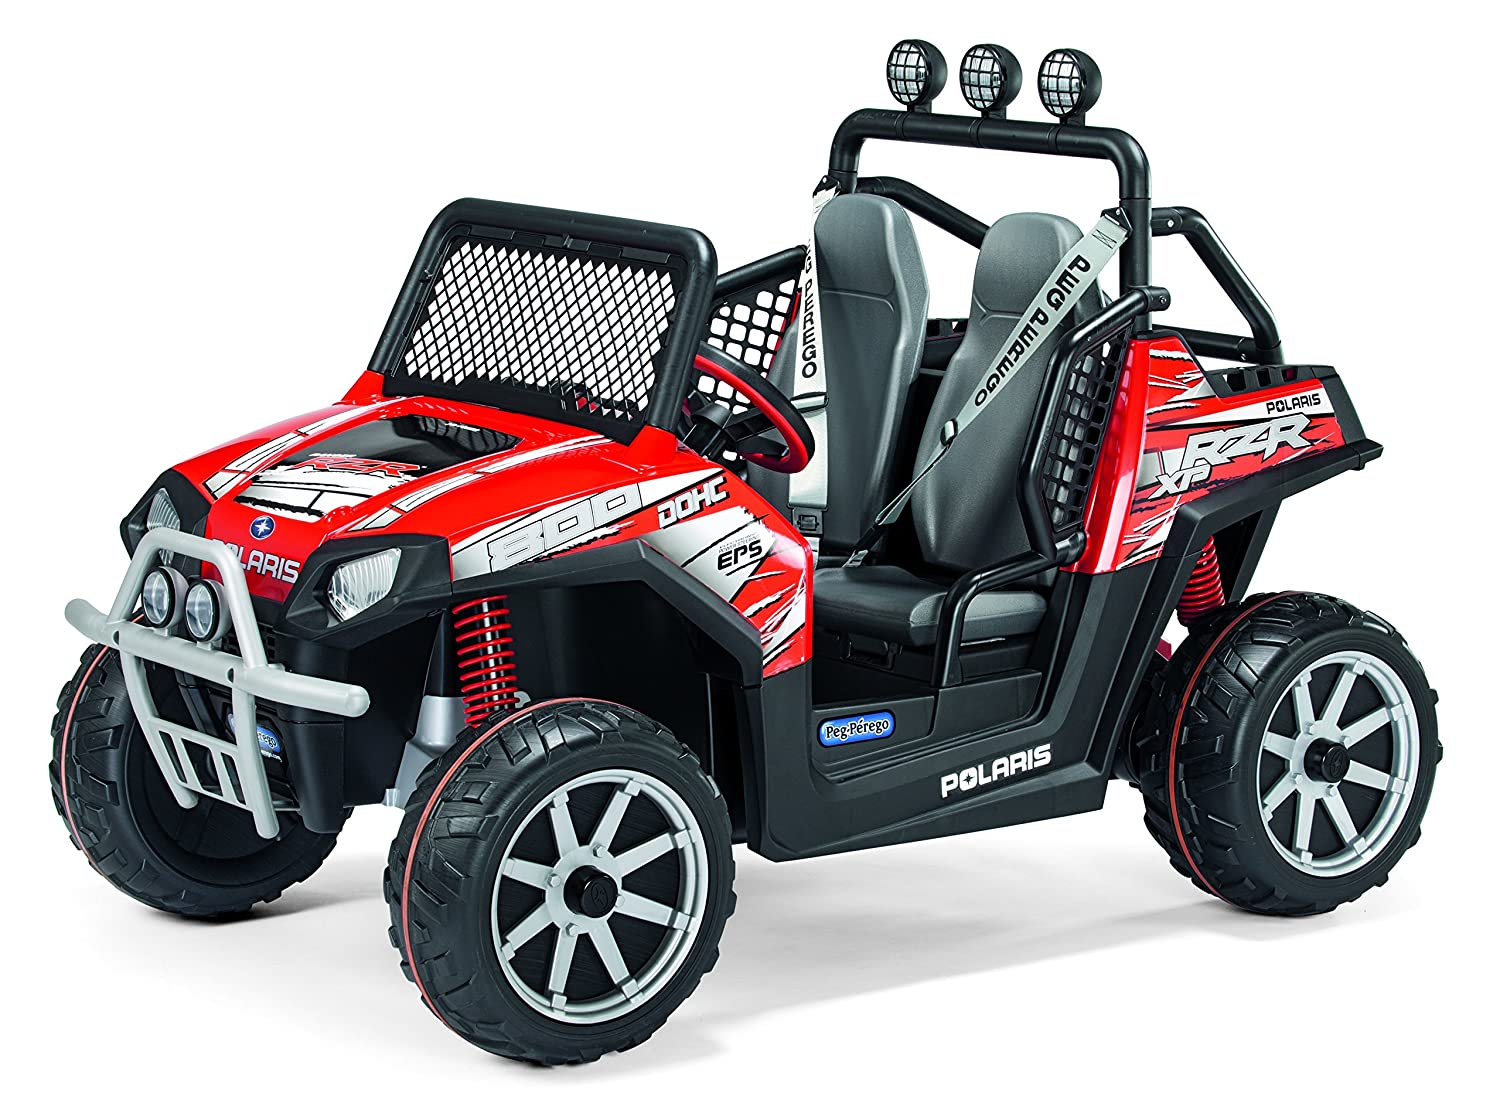 peg perego electric car for kids ride on rzr polaris red ranger 24 volt battery 692624346222 ebay. Black Bedroom Furniture Sets. Home Design Ideas